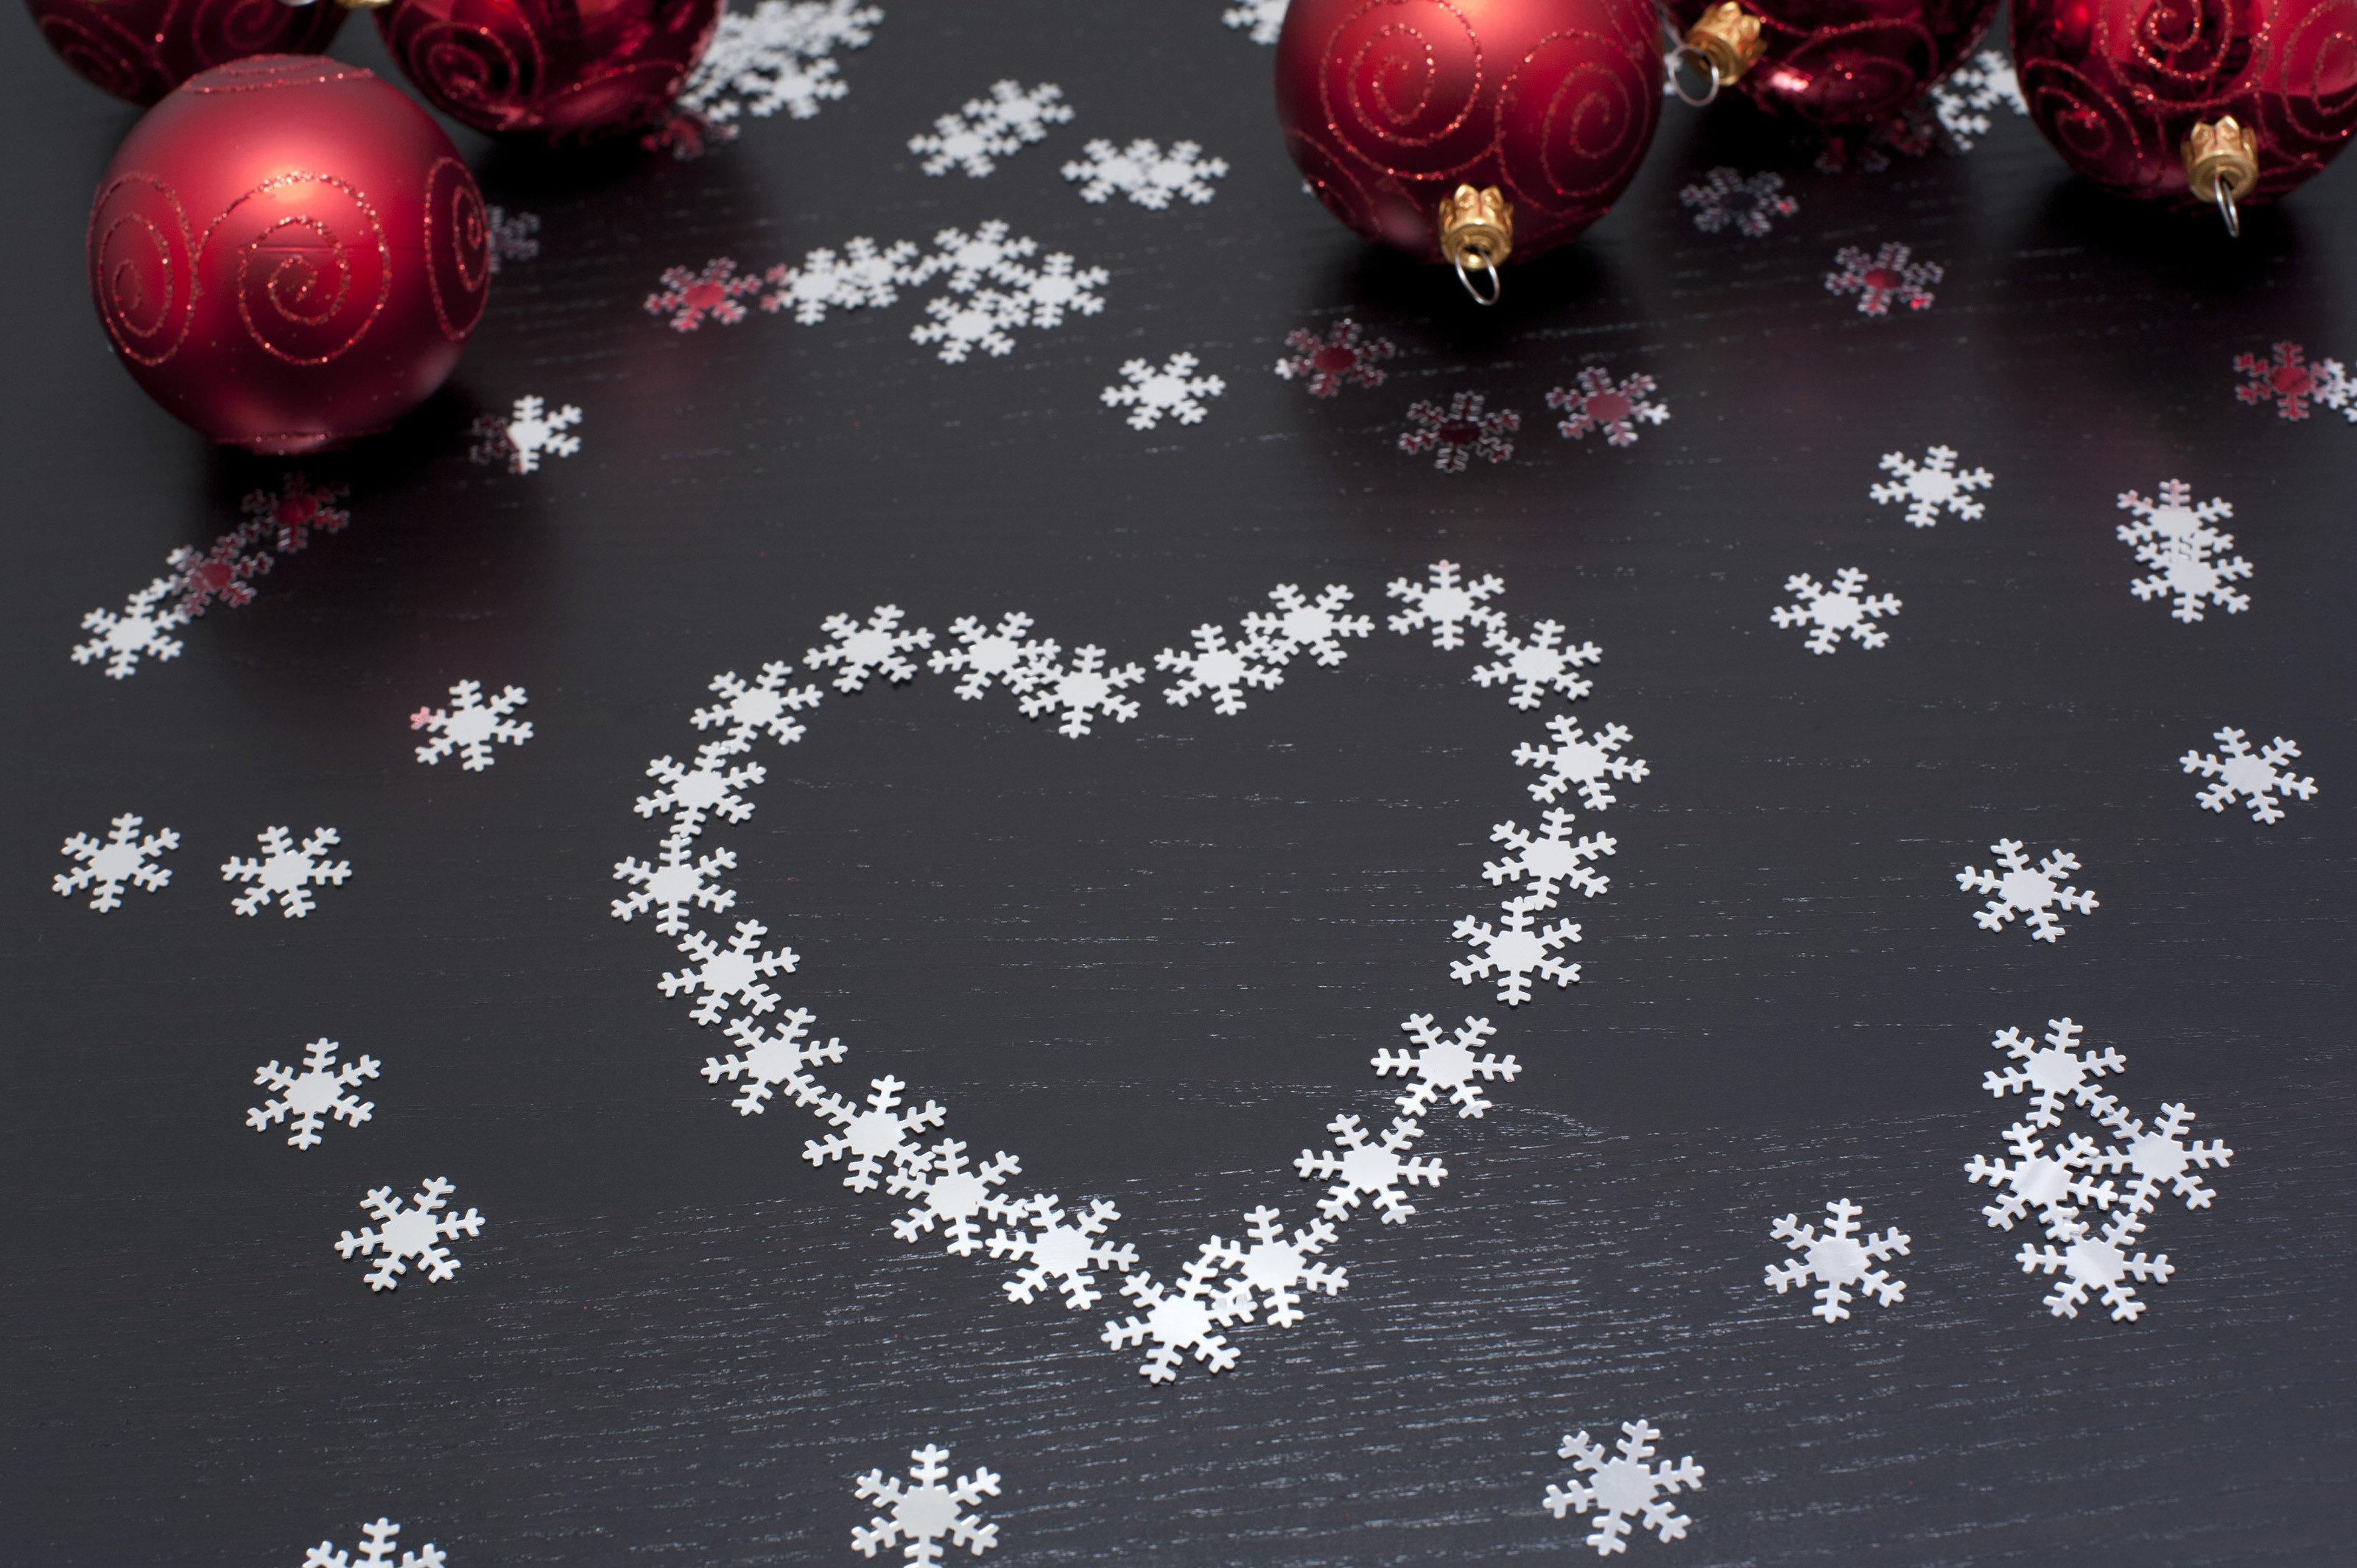 3200x2129 Christmas Love Wallpaper Background HD for Pc Mobile Phone Free Download  Desktop Images